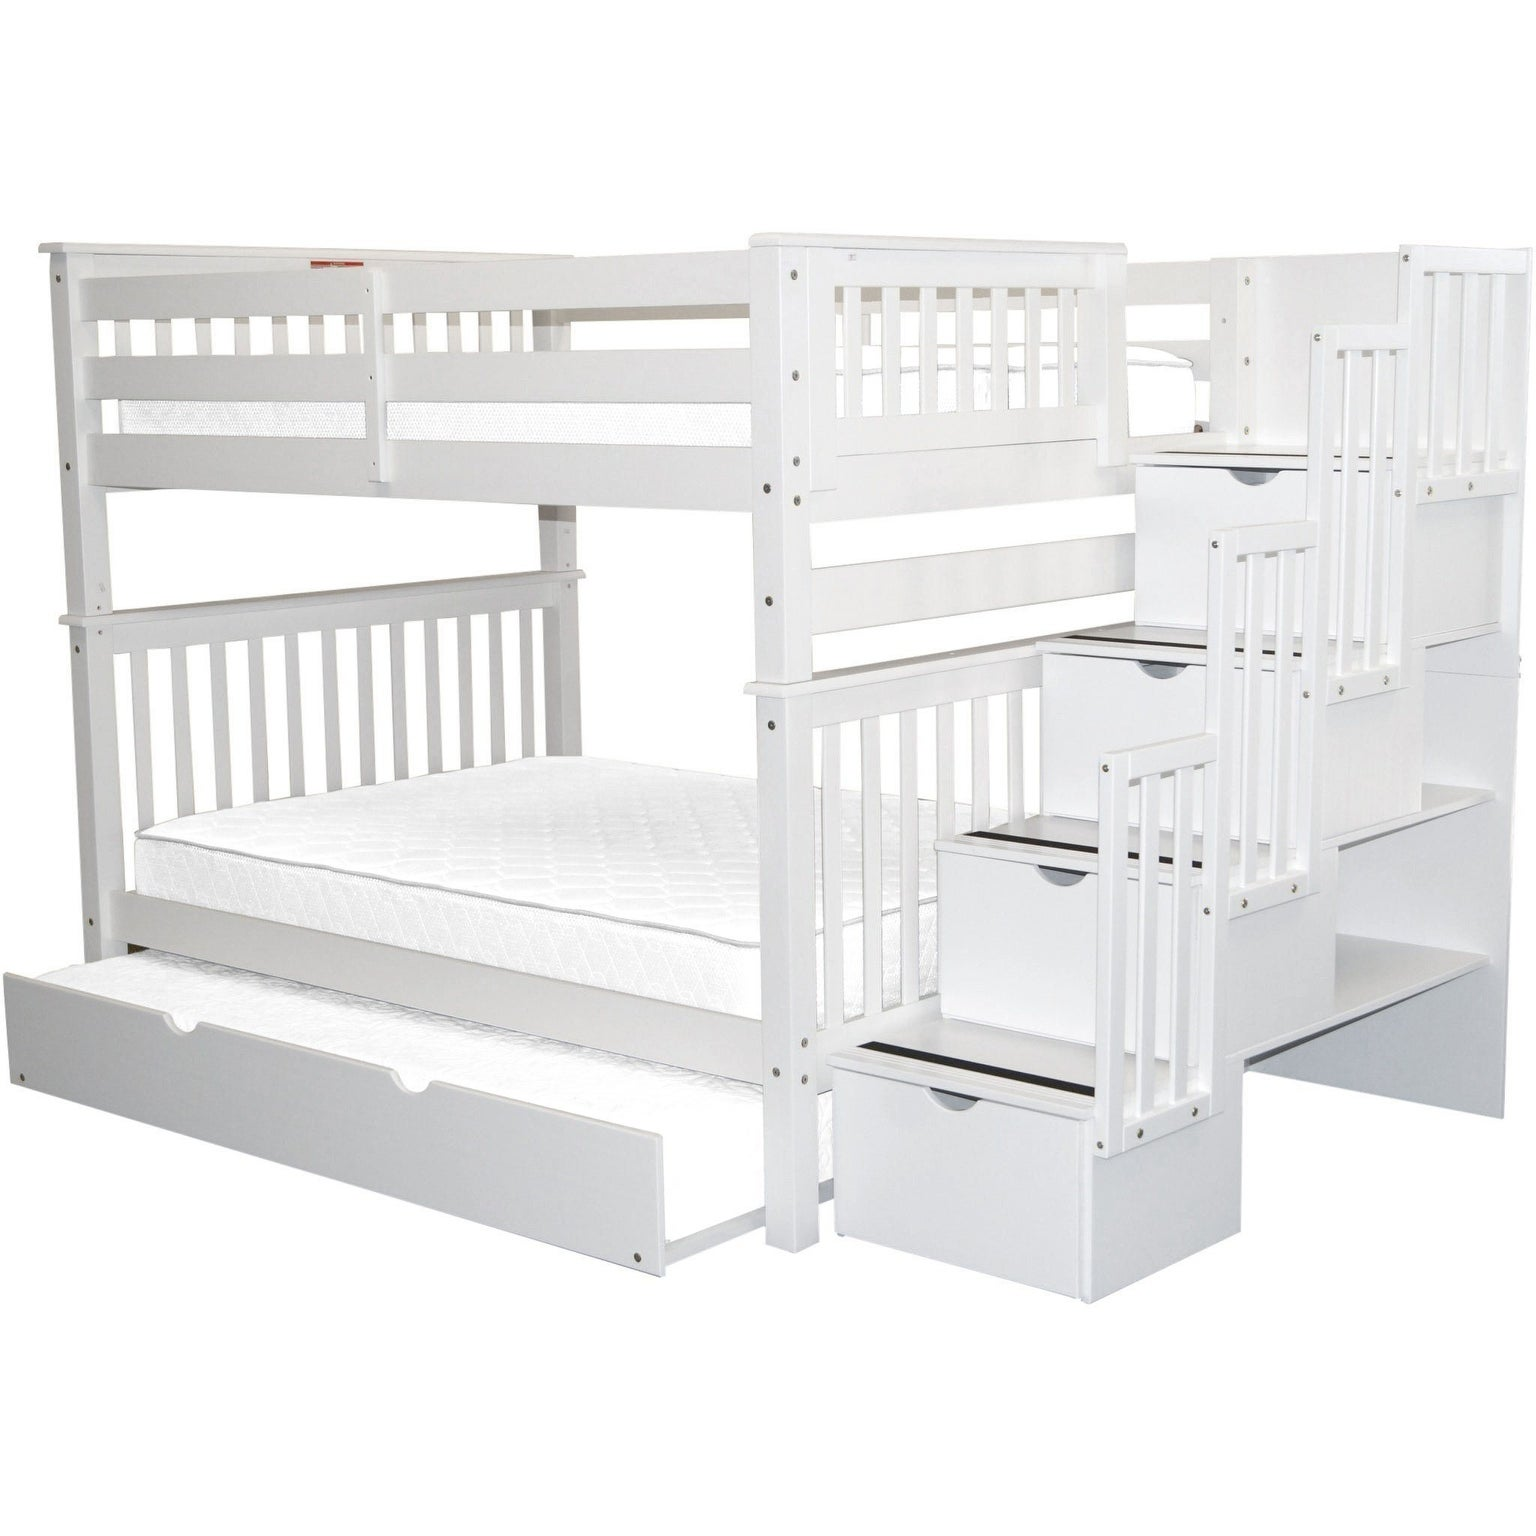 Picture of: Bedz King Stairway Bunk Beds Full Over Full With 4 Drawers In The Steps And A Full Trundle White Overstock 22669884